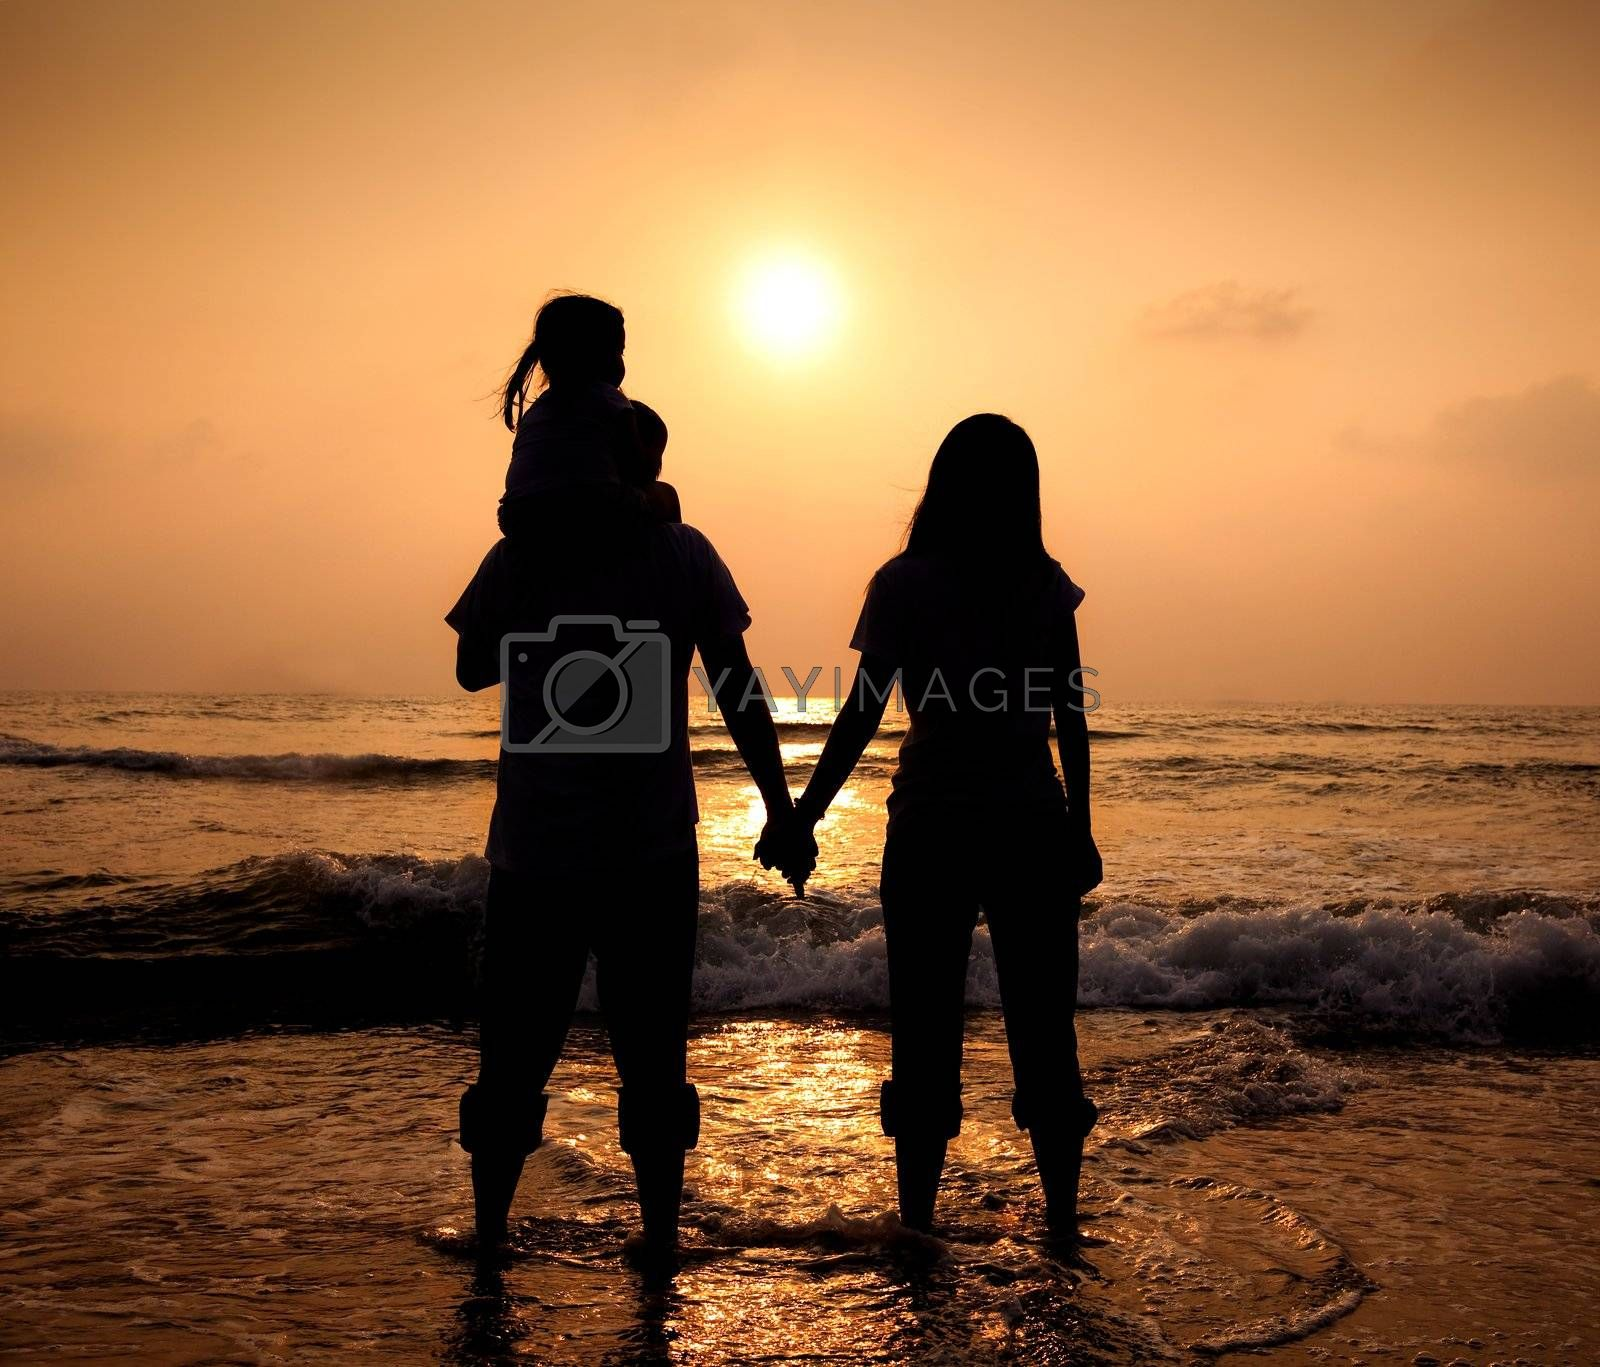 The silhouette of loving asian family walking while holding hands on beach at sunset by tomwang